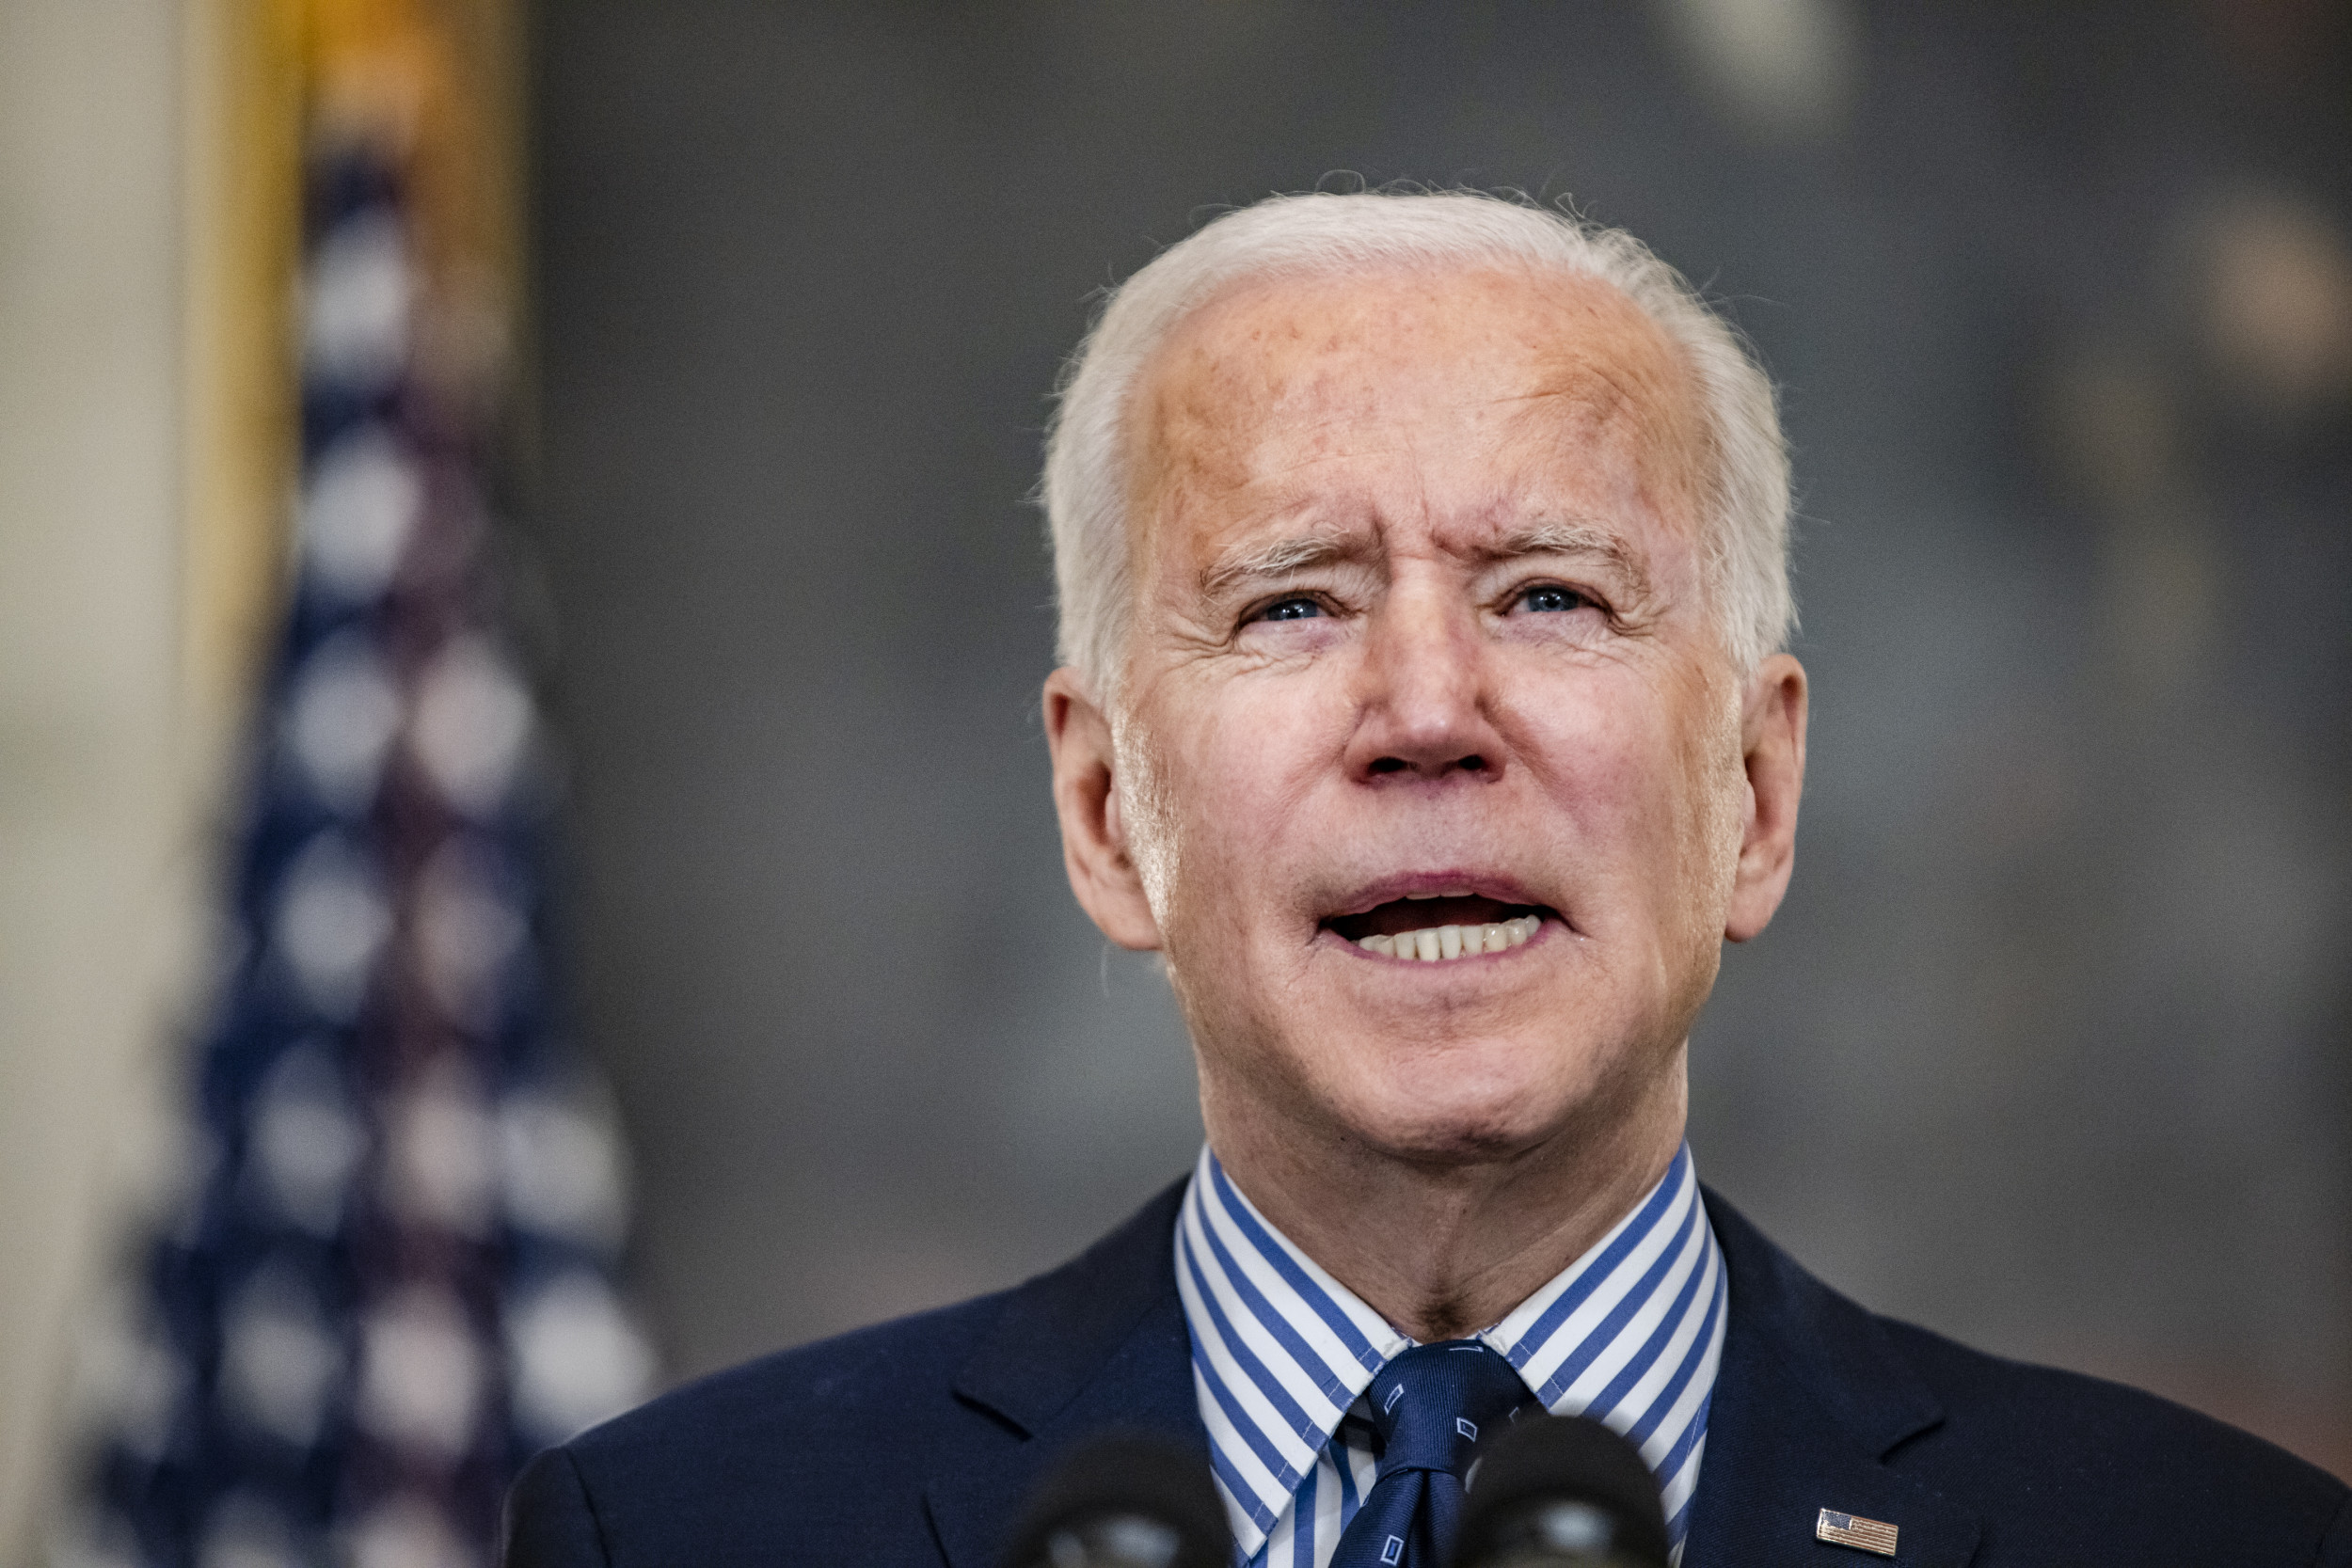 68% of Americans support Biden's pandemic response, most say lifting restrictions too fast: poll